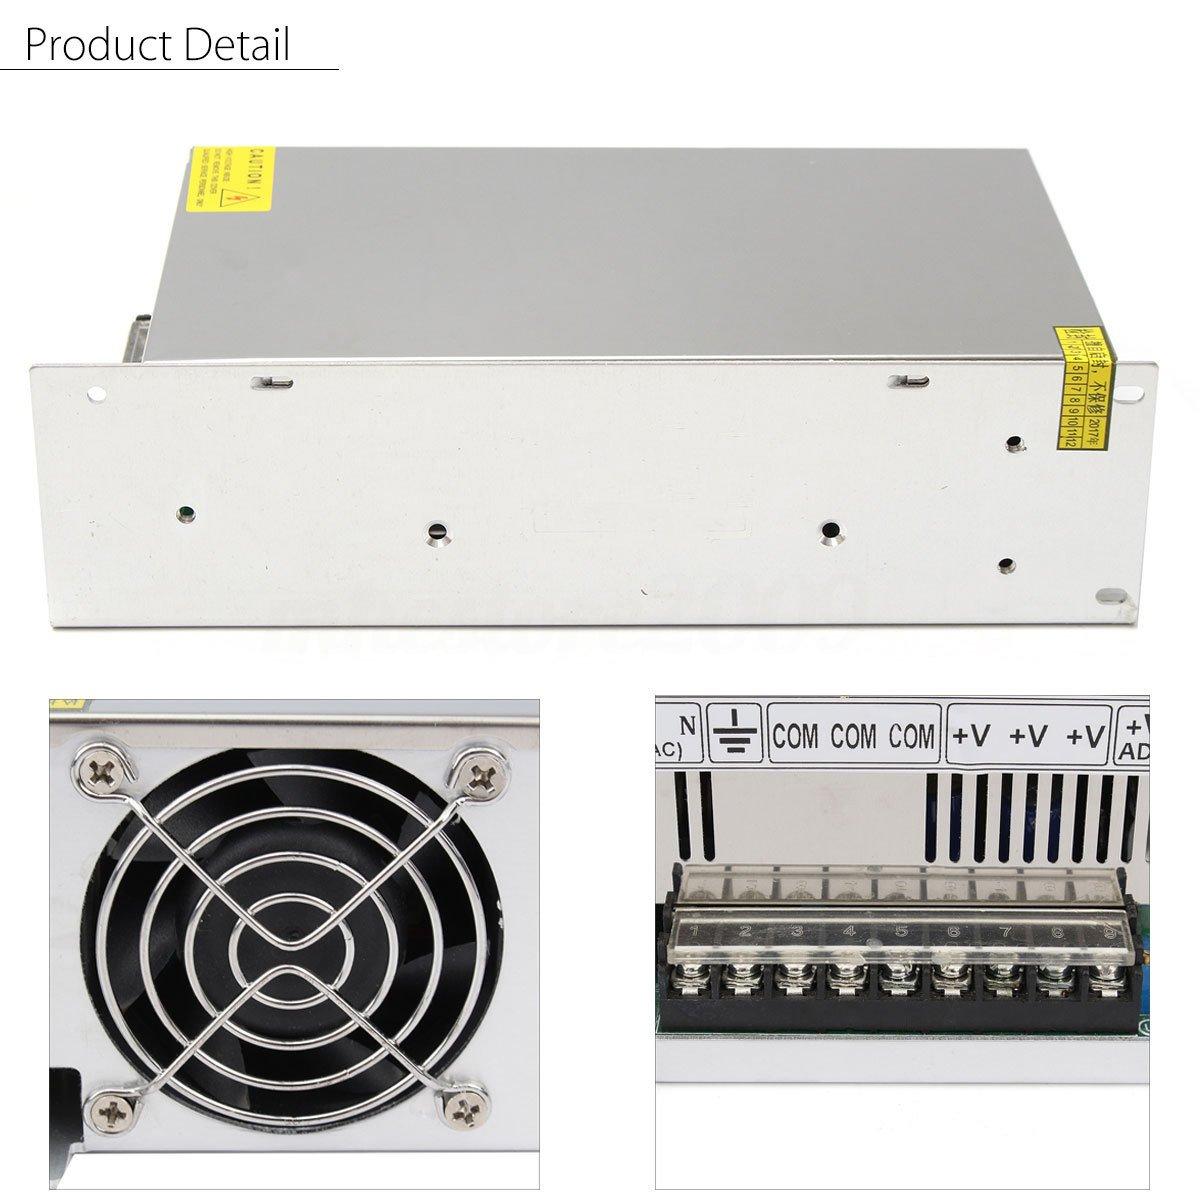 48V 20A 1000W Universal Regulated Switching Power Supply Driver for CCTV camera LED Strip AC 100-240V Input to DC 48V by Xunba Tech (Image #3)